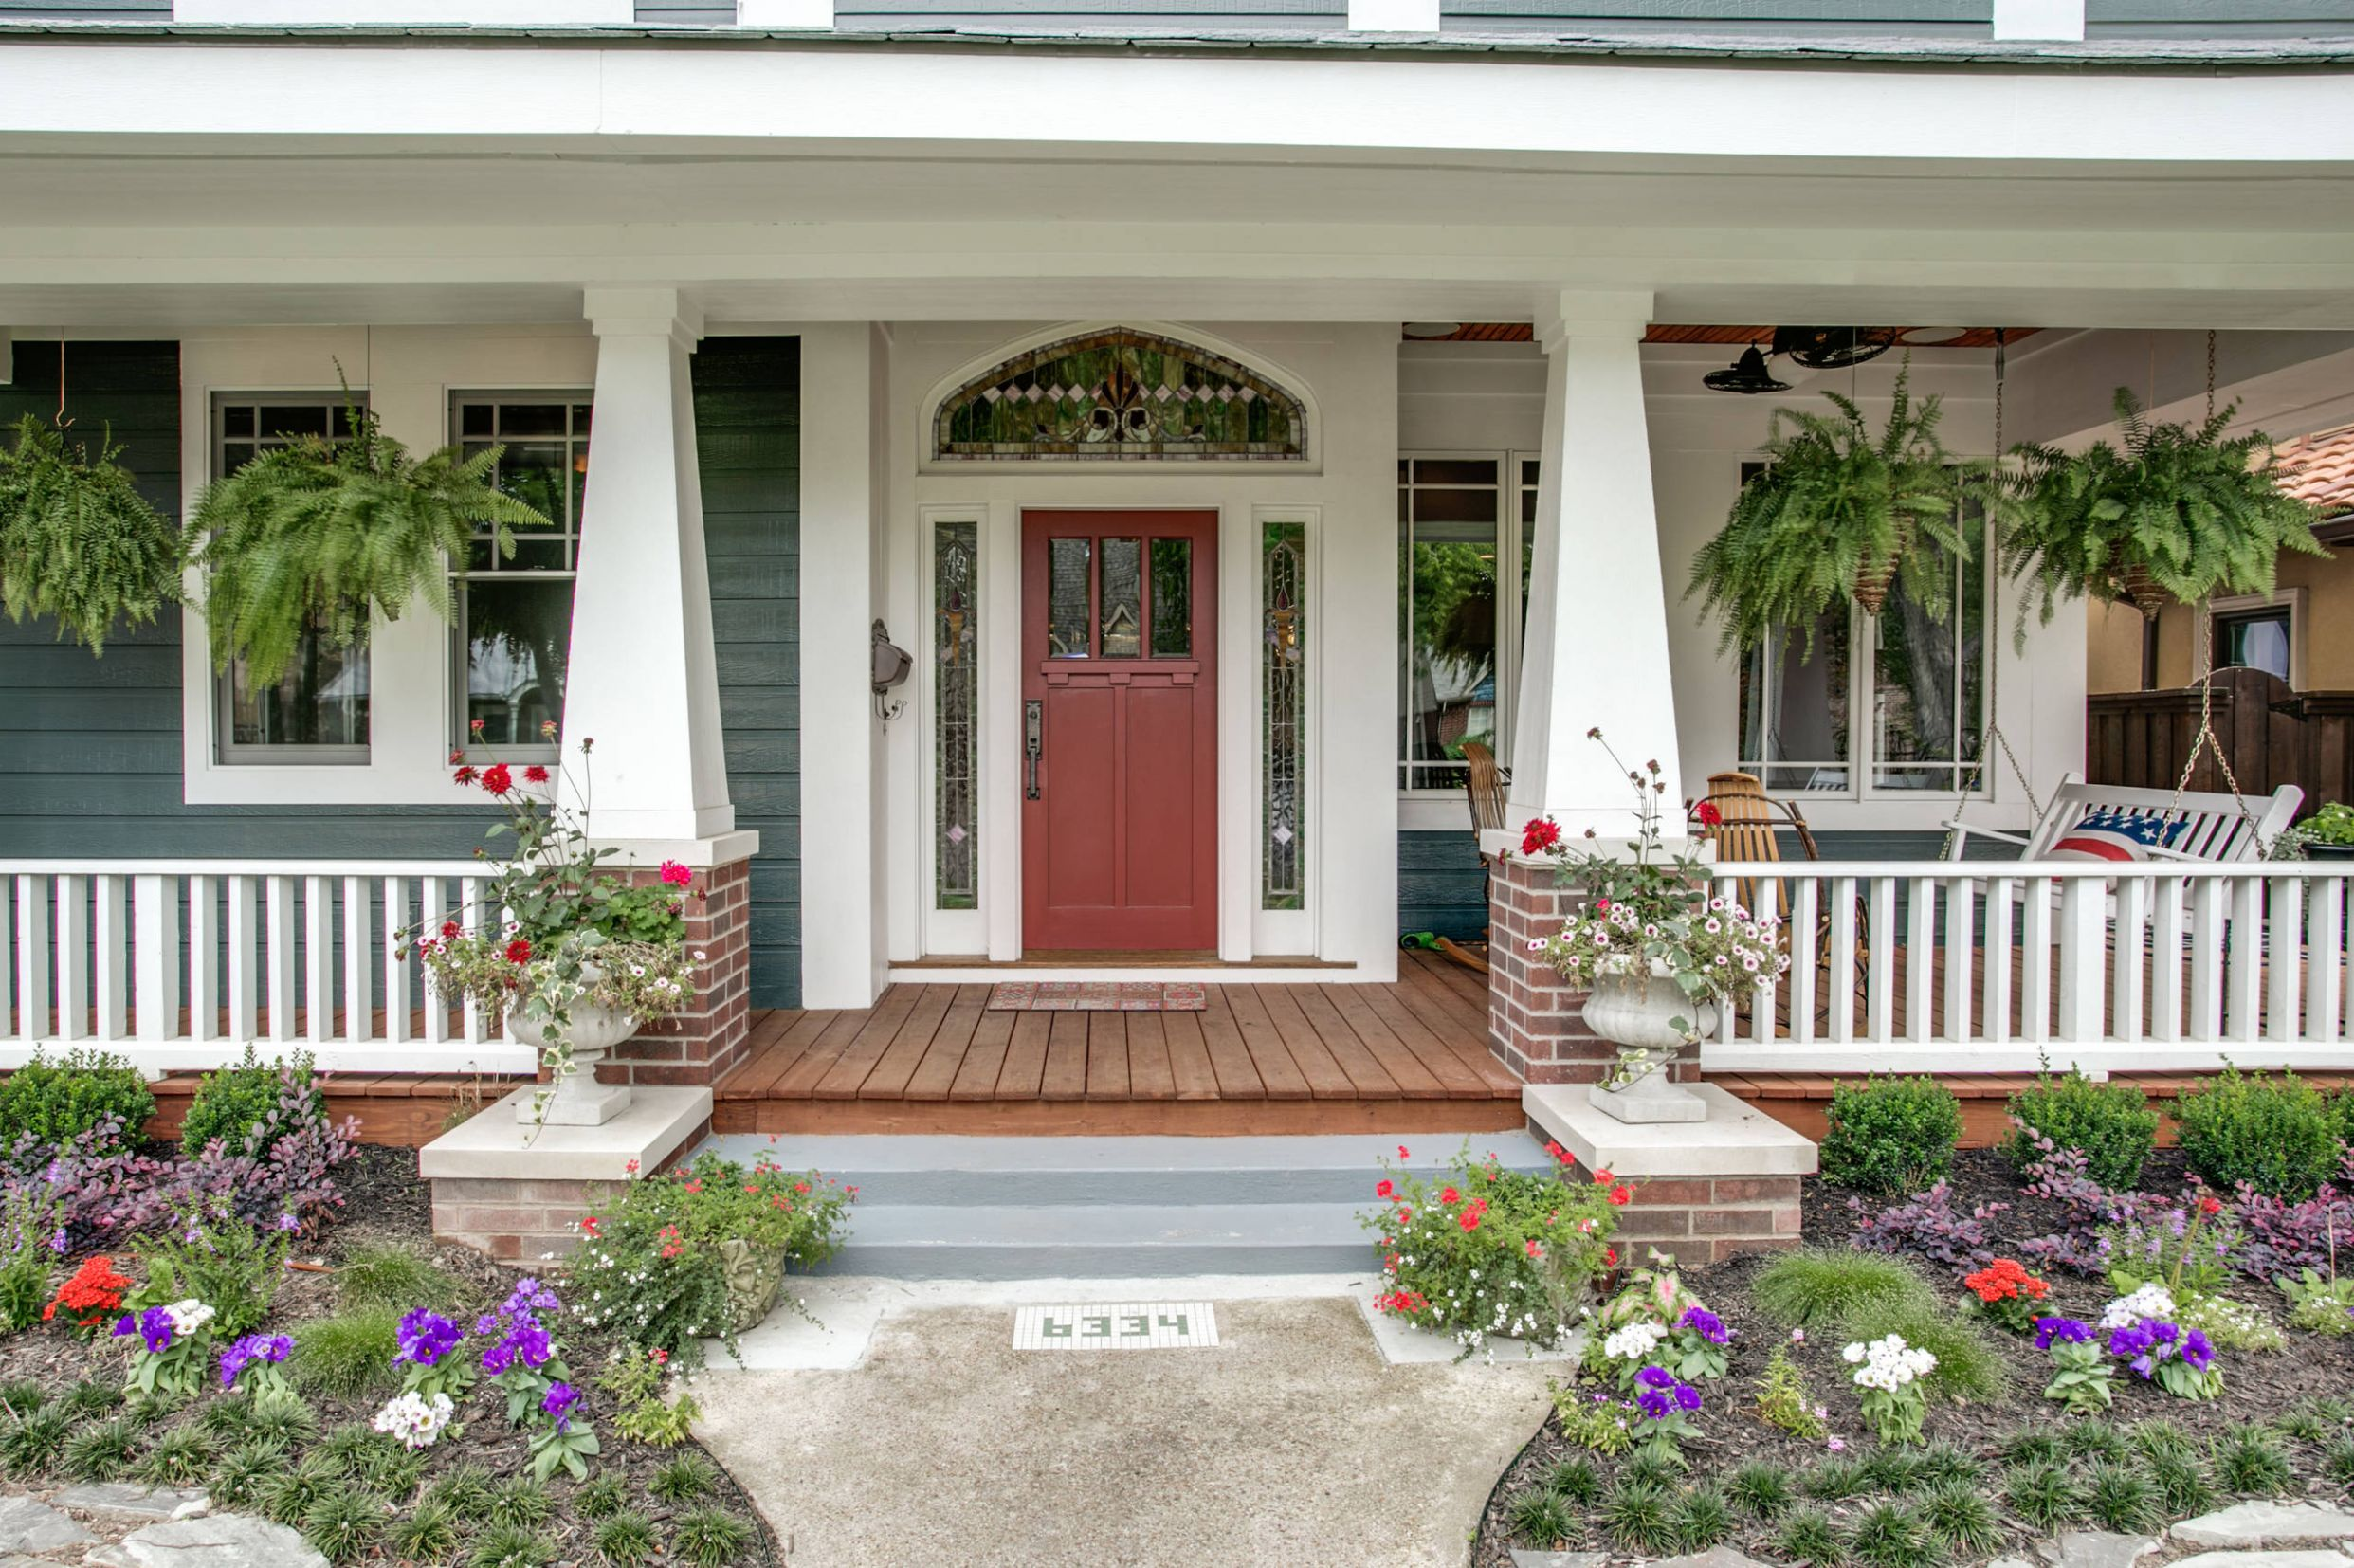 9 Beautiful Craftsman Front Porch Pictures & Ideas | Houzz